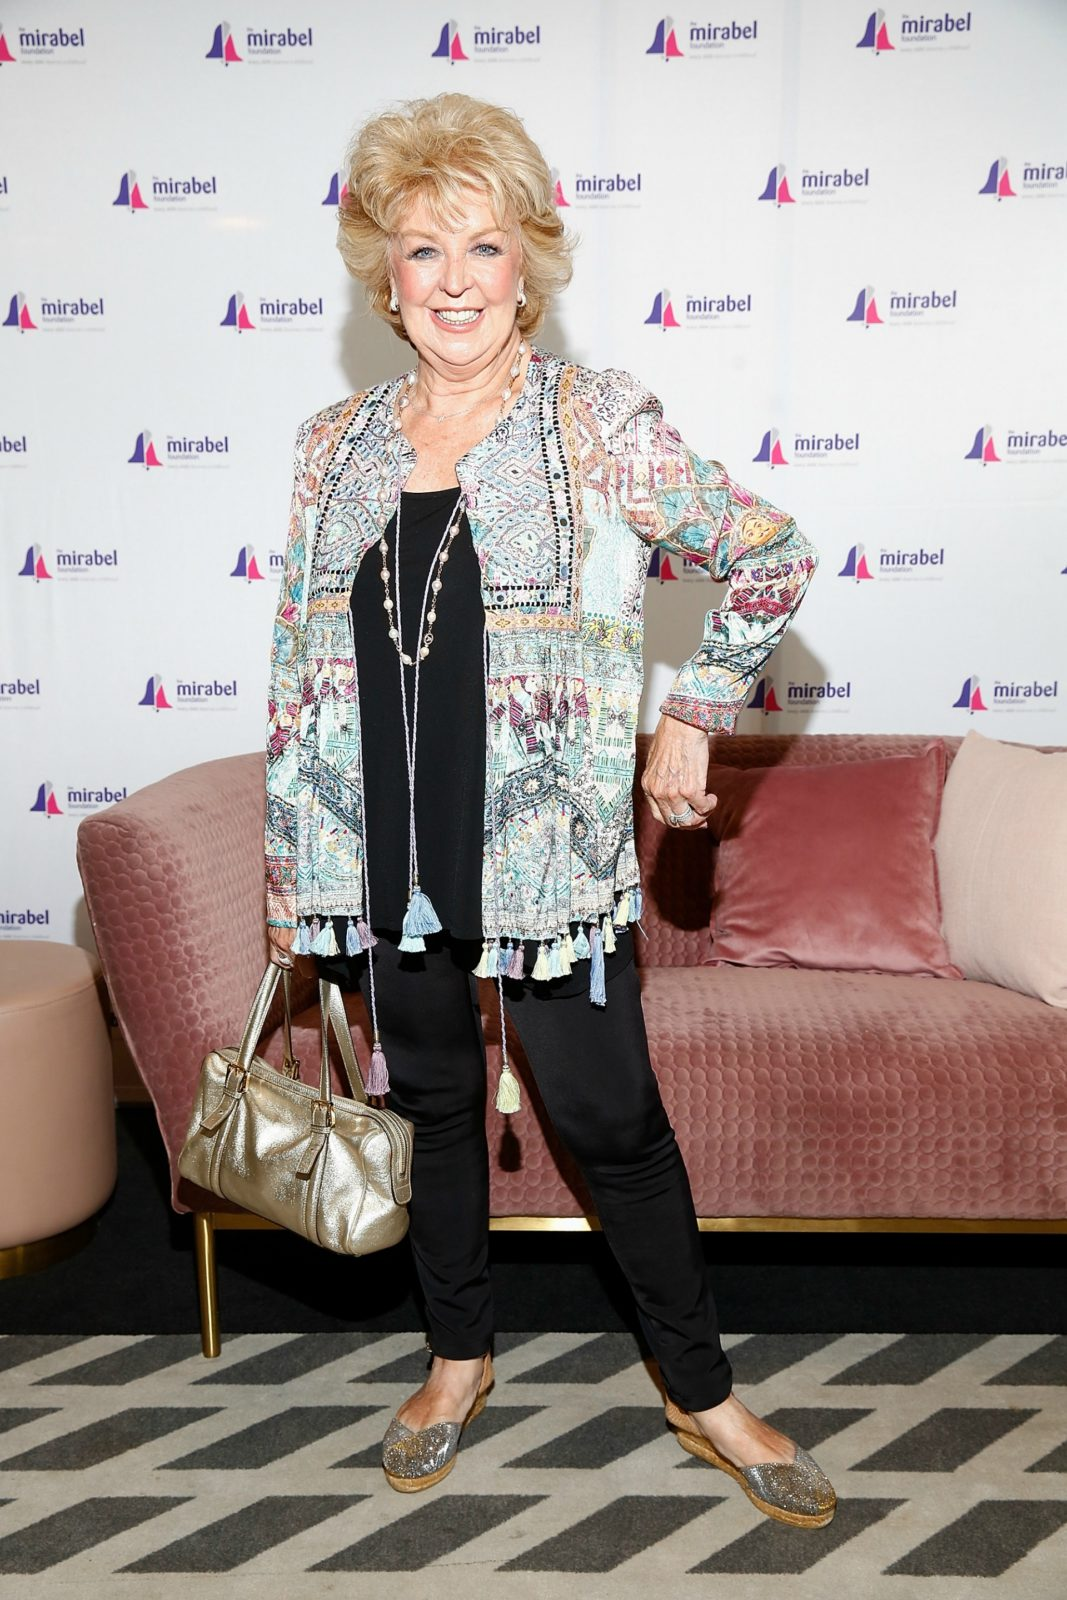 Patti Newton puts her best fashion foot forward at the Mirabel Ladies Lunch 2019.